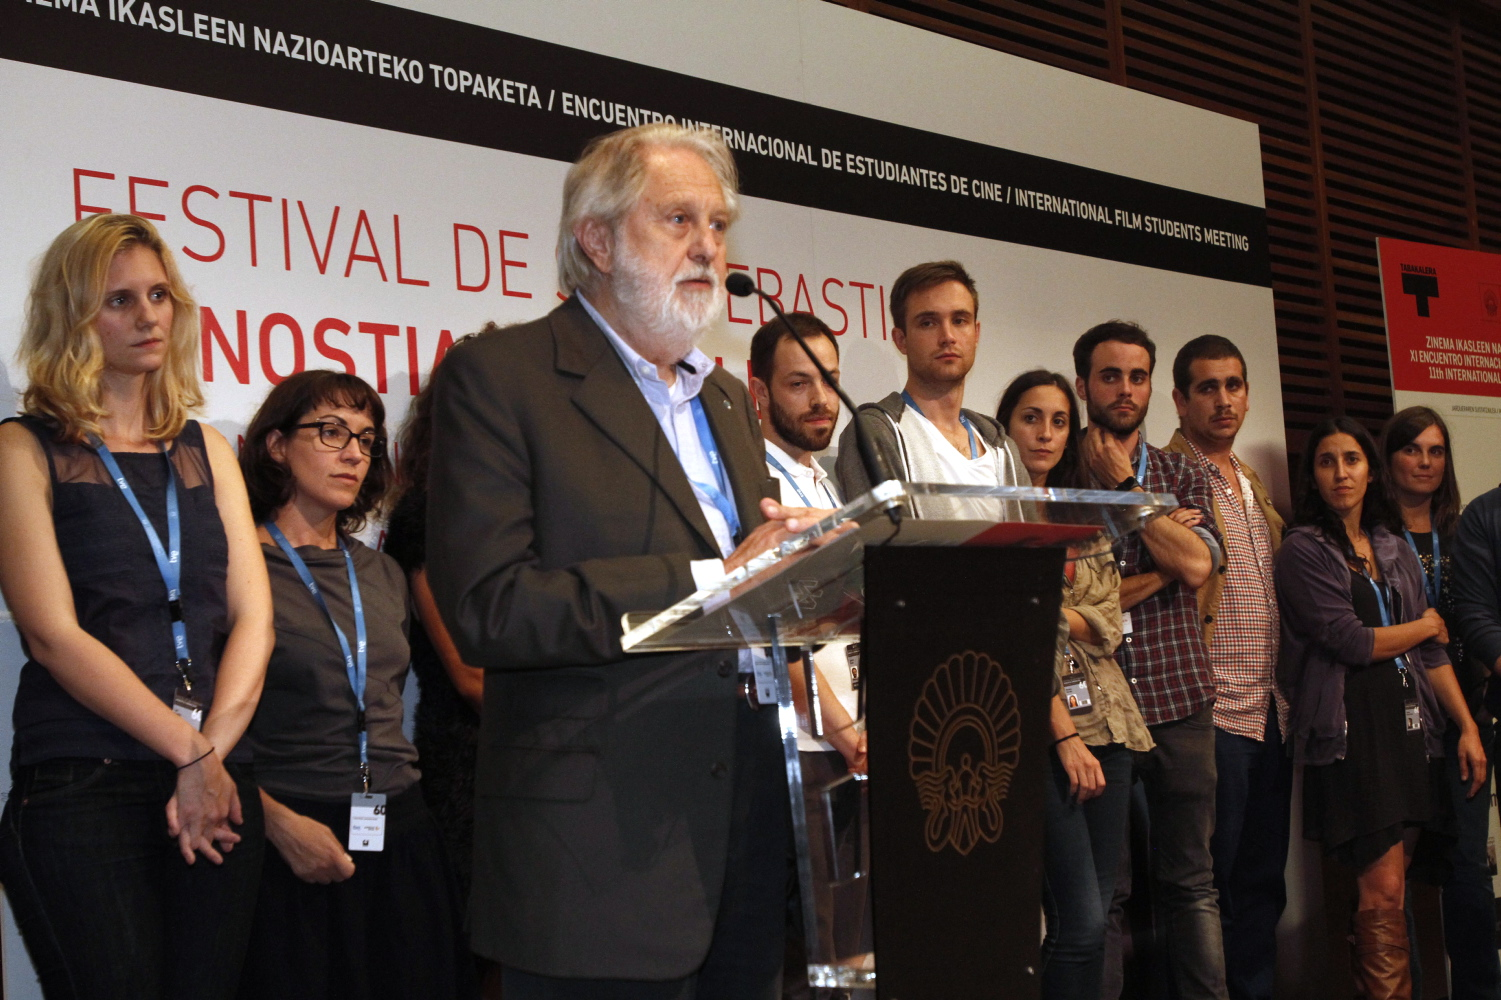 Lord David Puttnam (Jury Chairman)